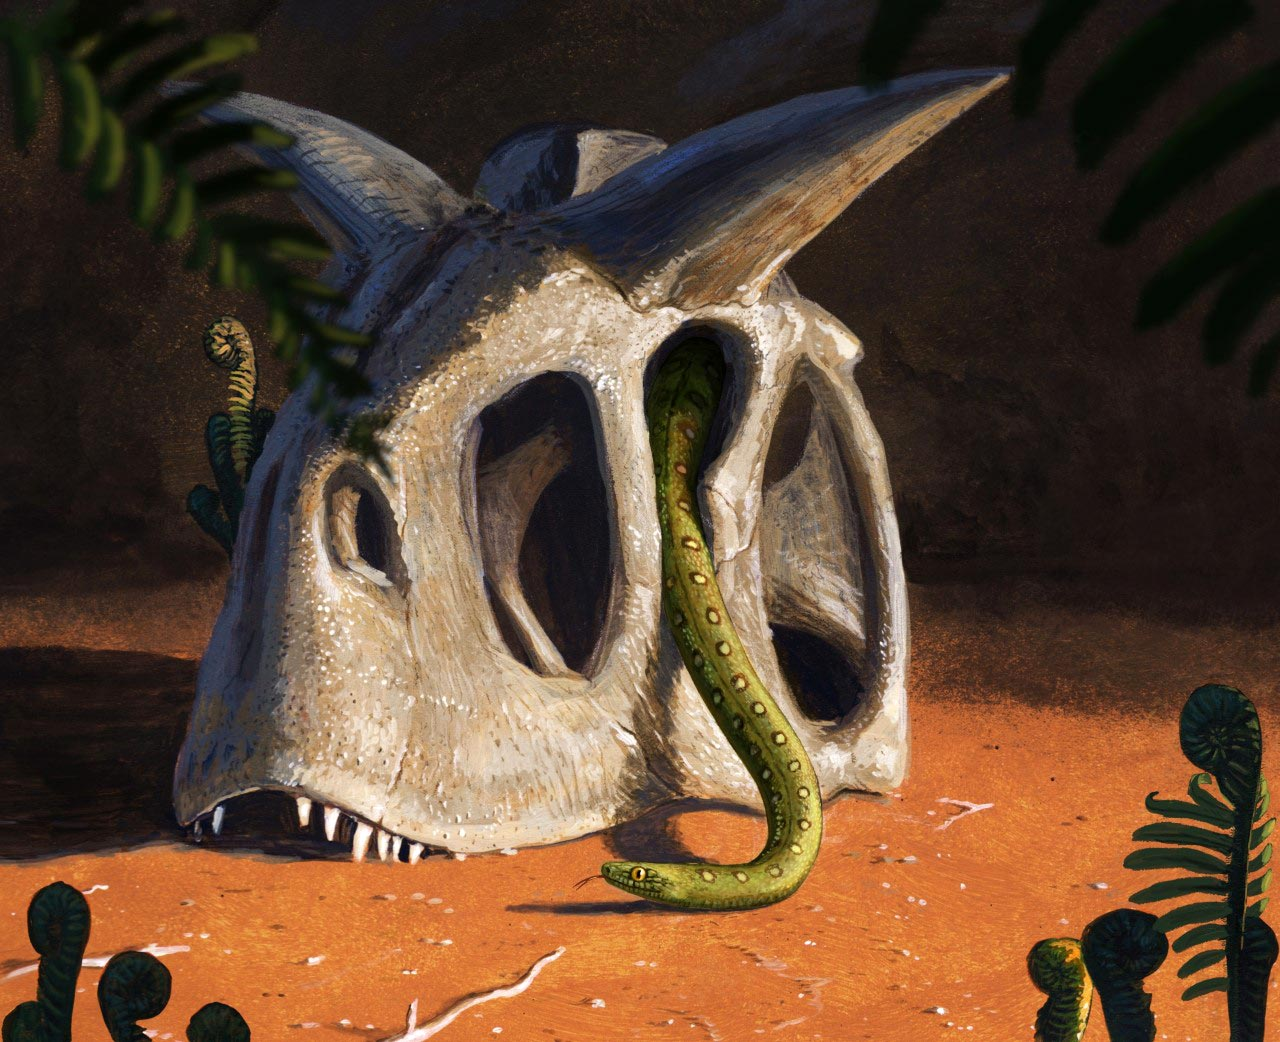 All Living Snakes Evolved From a Few Survivors of Asteroid That Killed the Dinosaurs – SciTechDaily